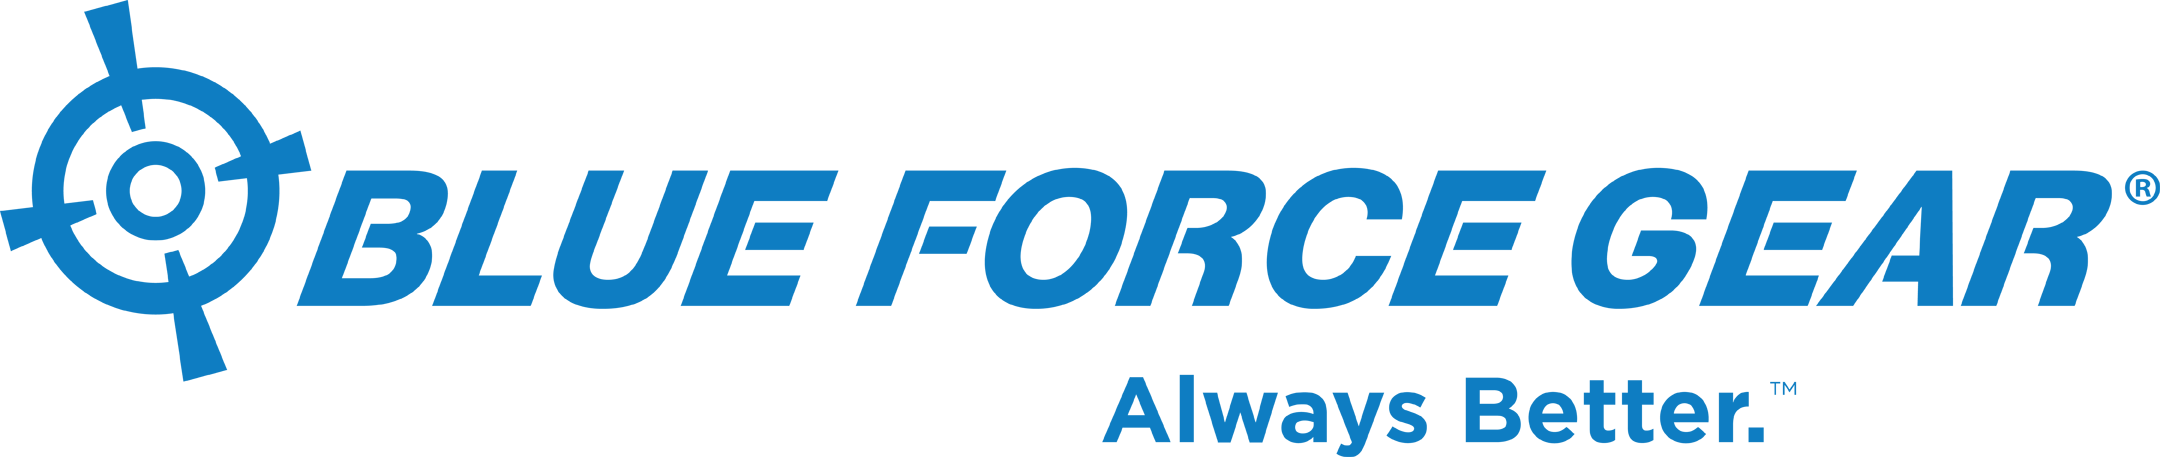 Blue Force Gear, Inc